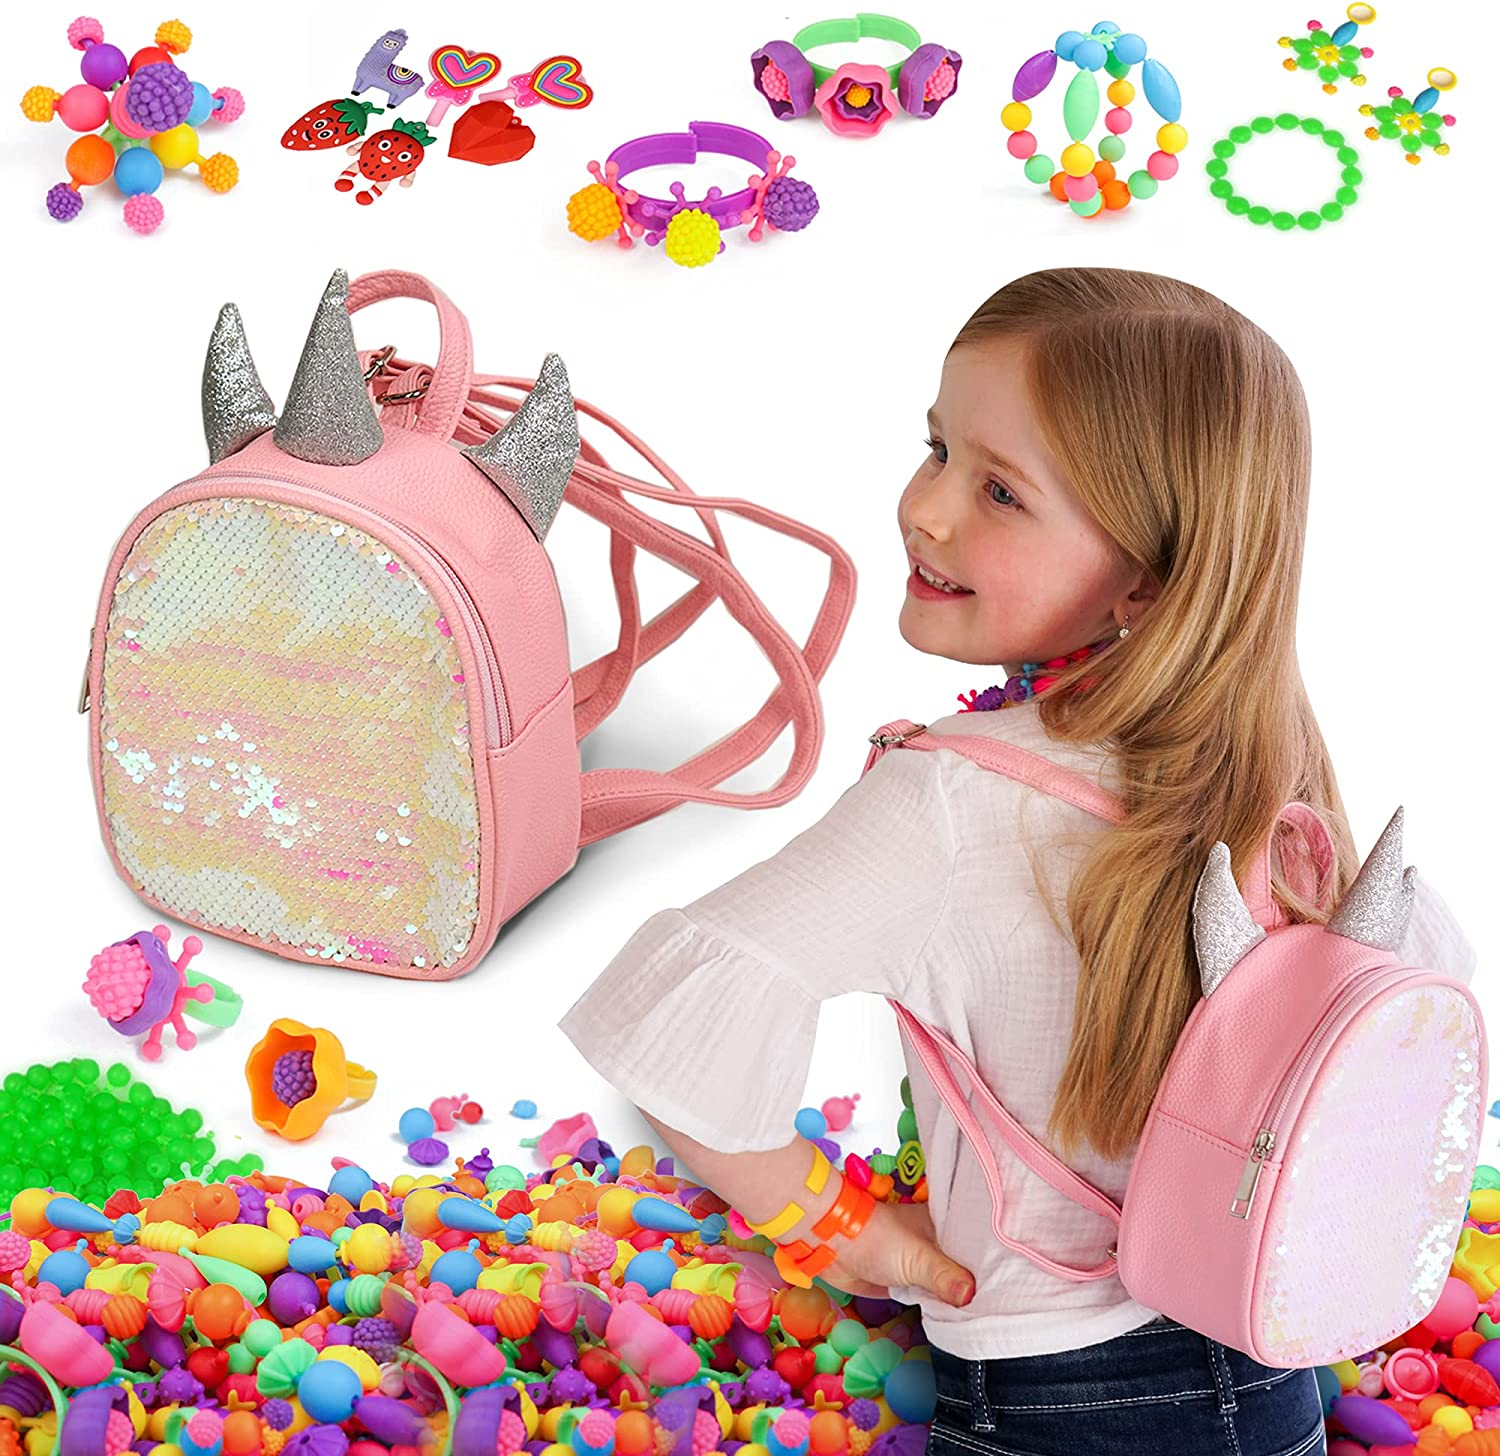 Axel Purchase Adventures Pop Beads Max 78% OFF Jewelery Making Colorf Kits for Girls